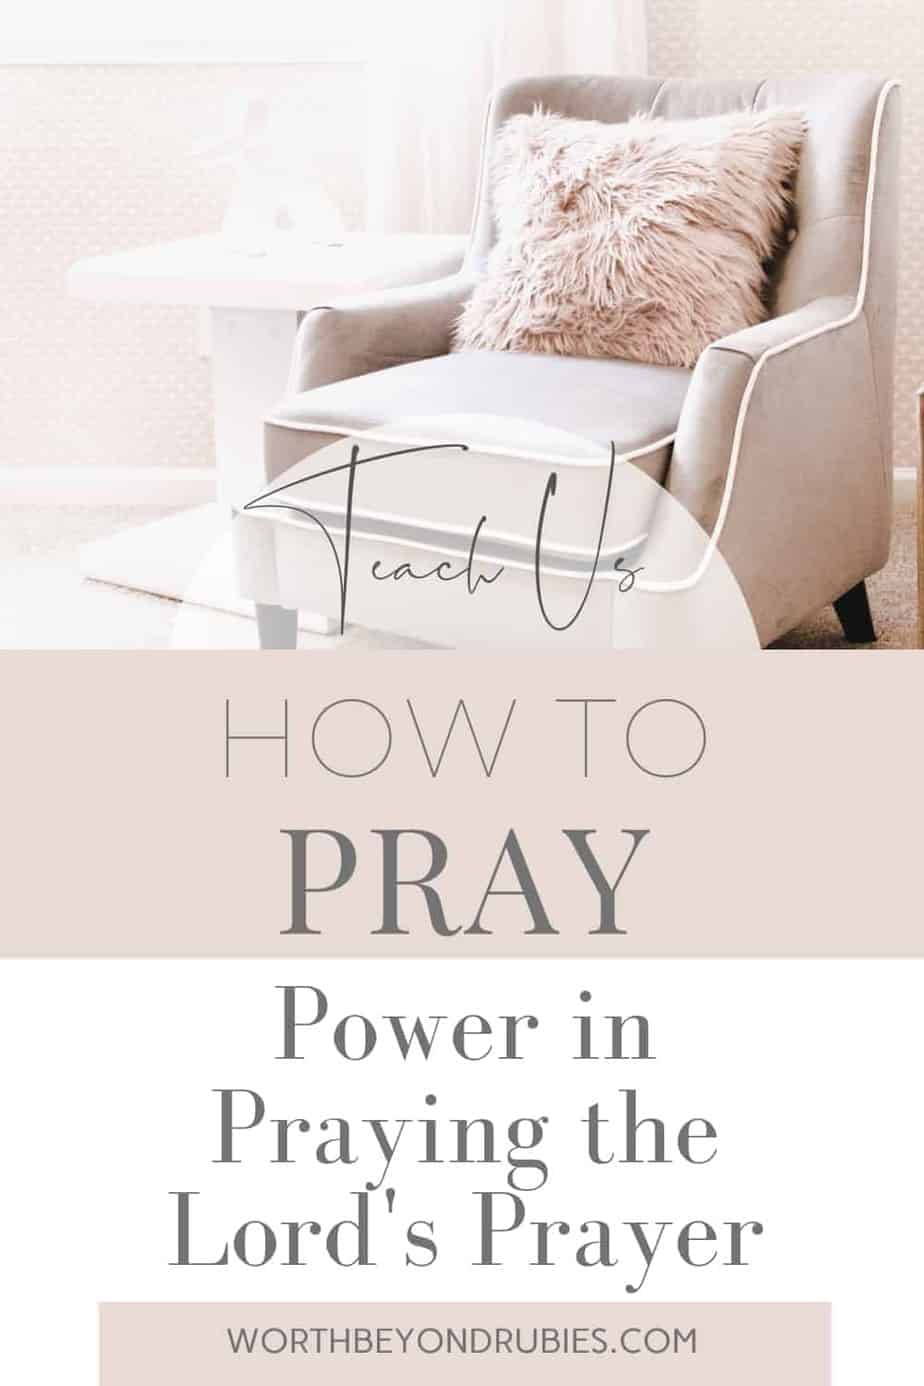 An image of a beige armchair with a light pink furry pillow on it and text that says Teach Me How to Pray - Power in Praying the Lord's Prayer